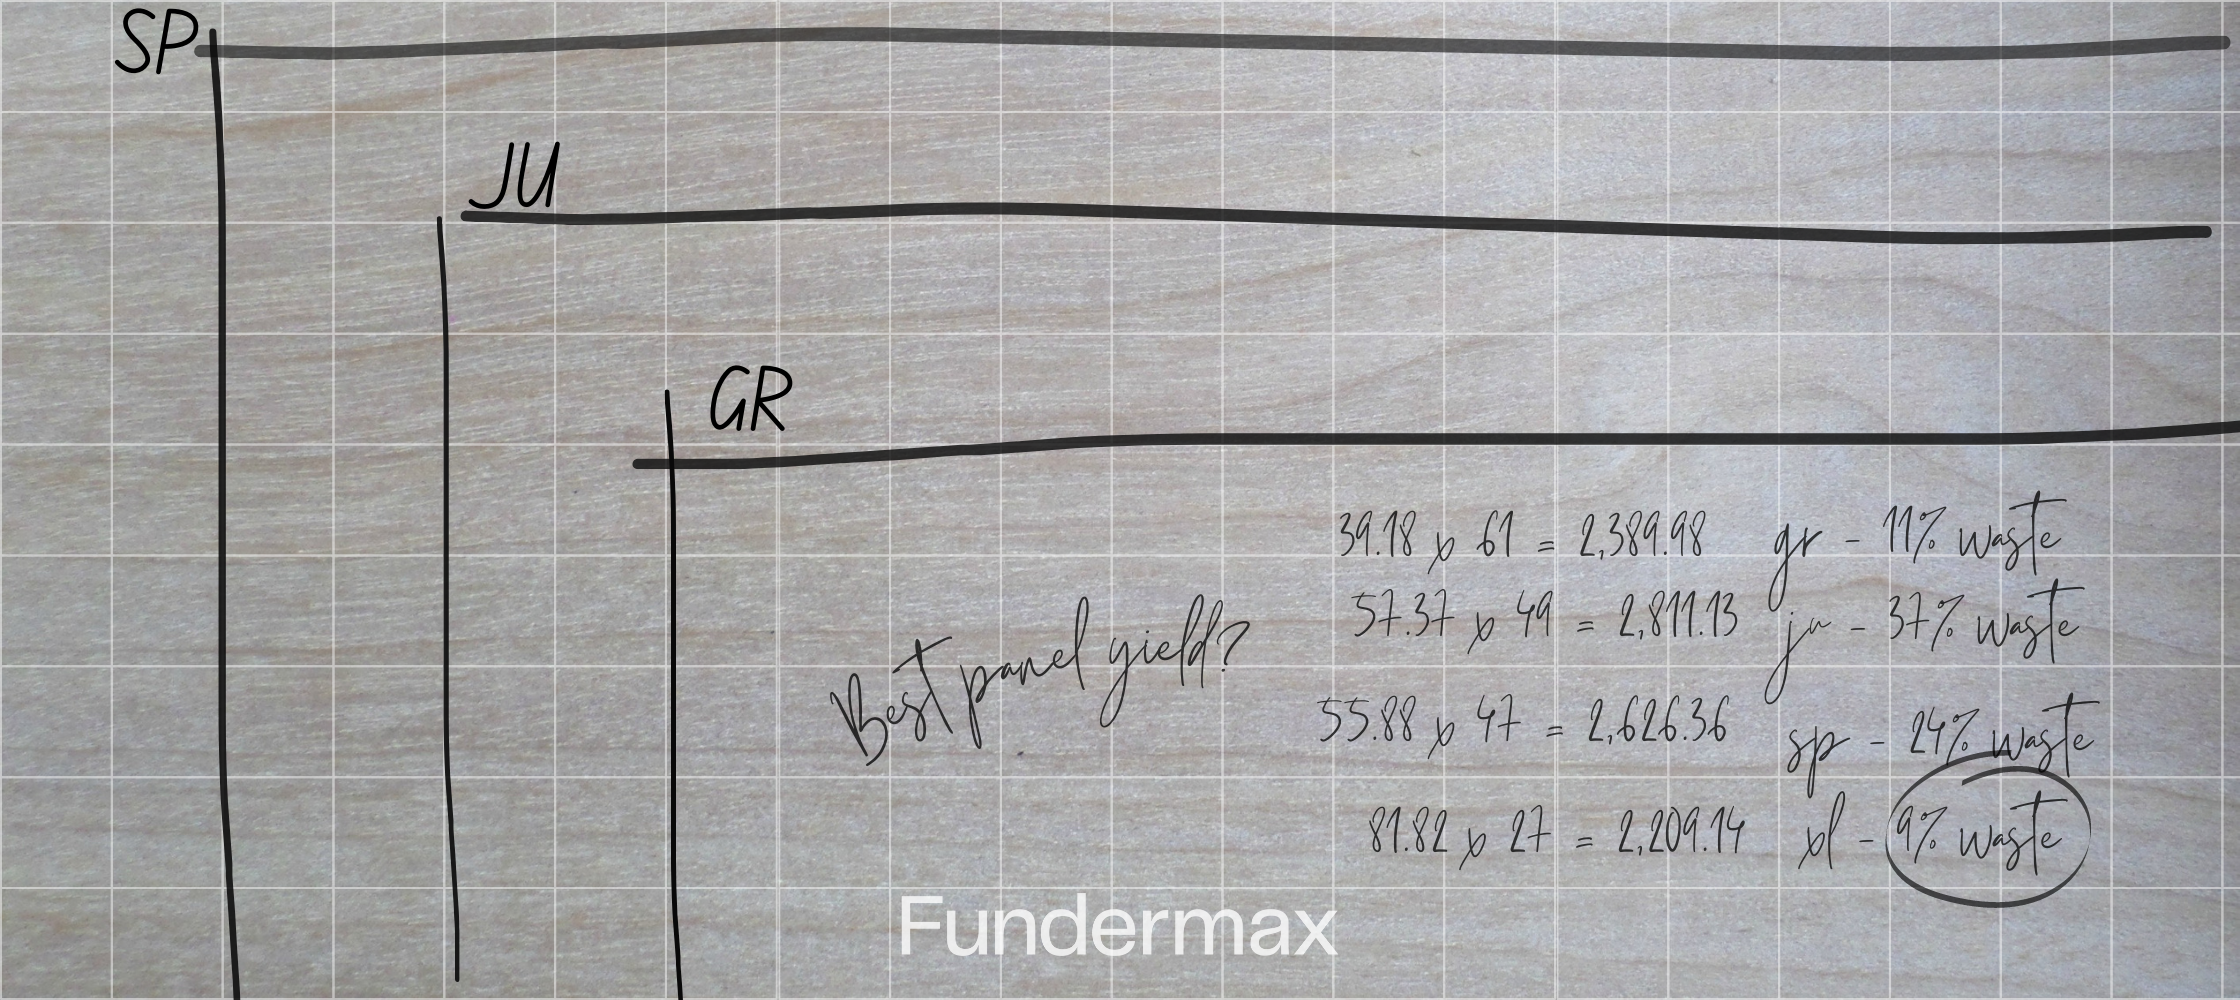 Panel Yield: How To Get The Most Out of Your Project Budget